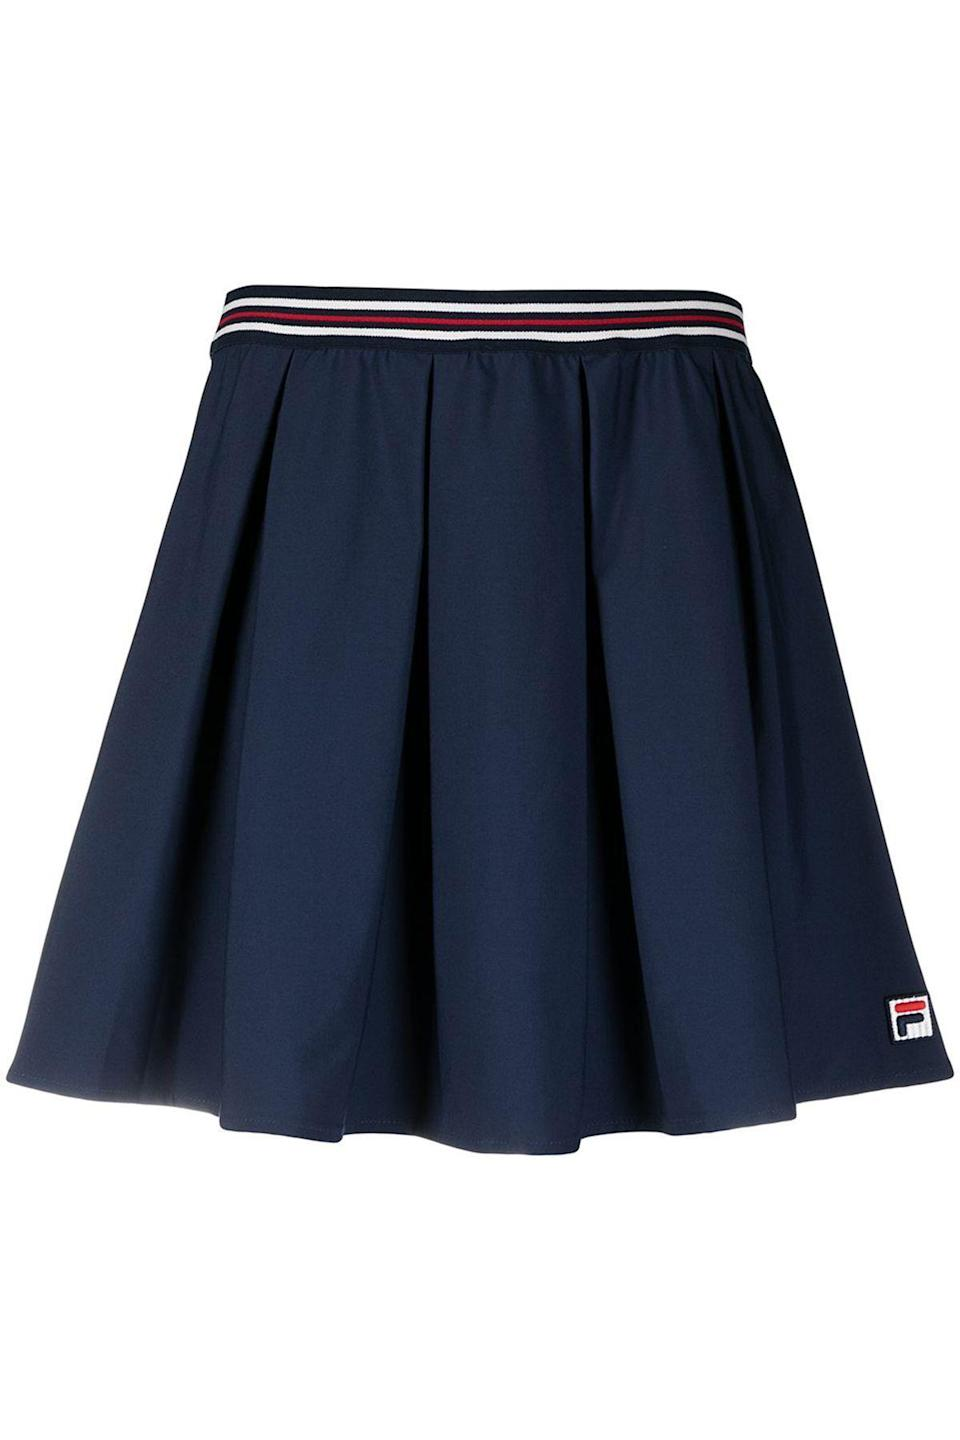 """<p><strong>Fila</strong></p><p>farfetch.com</p><p><strong>$83.00</strong></p><p><a href=""""https://go.redirectingat.com?id=74968X1596630&url=https%3A%2F%2Fwww.farfetch.com%2Fit%2Fshopping%2Fwomen%2Ffila-gonna-svasata-item-16346339.aspx&sref=https%3A%2F%2Fwww.townandcountrymag.com%2Fstyle%2Ffashion-trends%2Fg36717600%2Fbest-tennis-skirts%2F"""" rel=""""nofollow noopener"""" target=""""_blank"""" data-ylk=""""slk:Shop Now"""" class=""""link rapid-noclick-resp"""">Shop Now</a></p><p>At a more modest (read: work-appropriate) skirt length, Fila's A-line skirt is a sporty summer staple suitable for all occasions.</p>"""